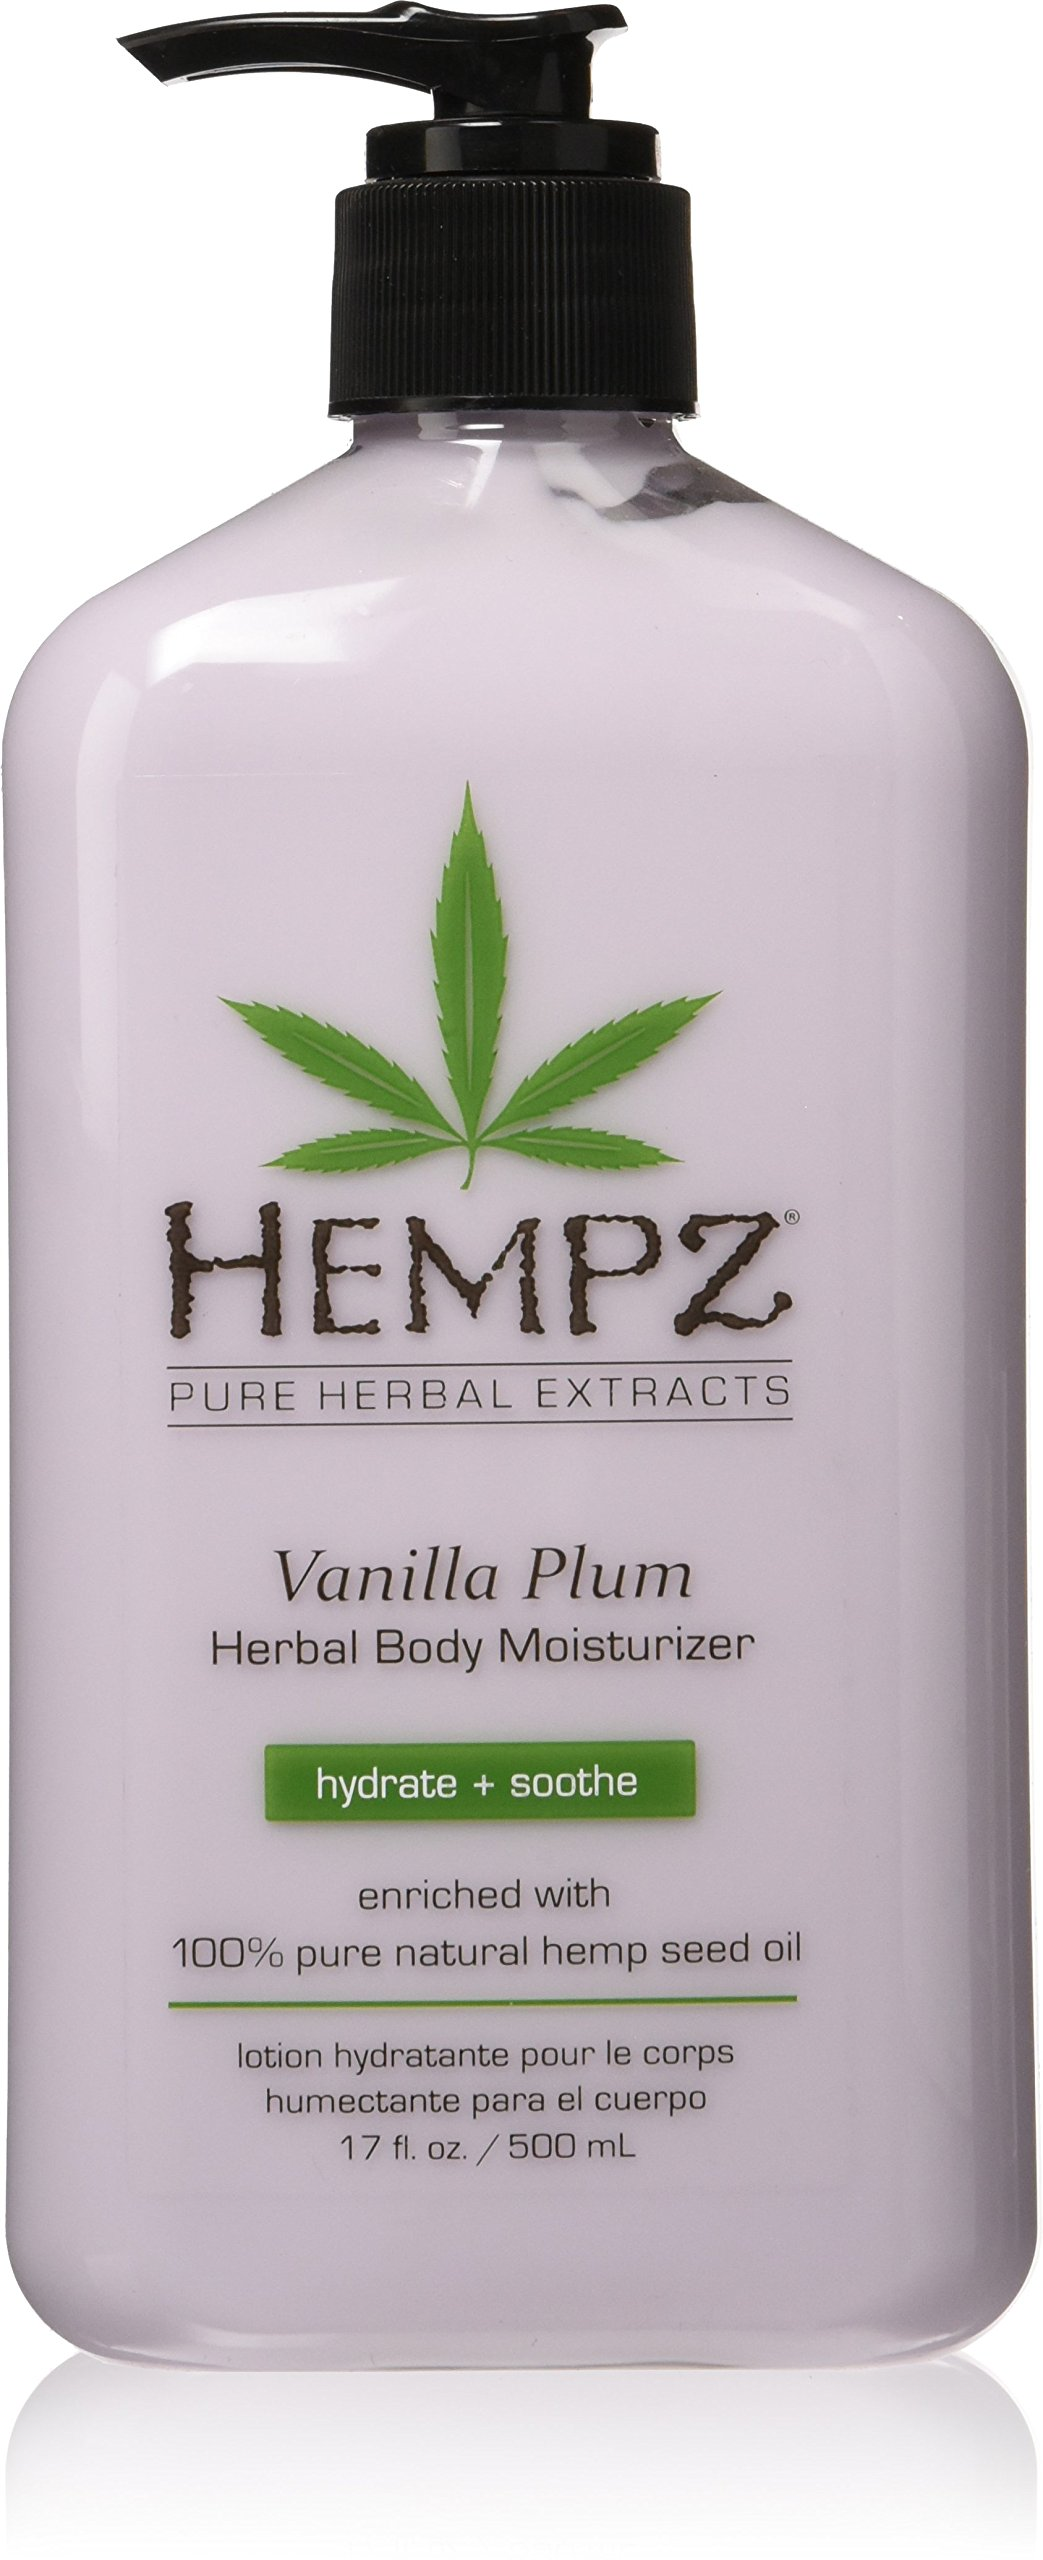 Hempz Hempz Herbal Body Moisturizer, Light Purple, Vanilla Plum, 17 Fluid Ounce